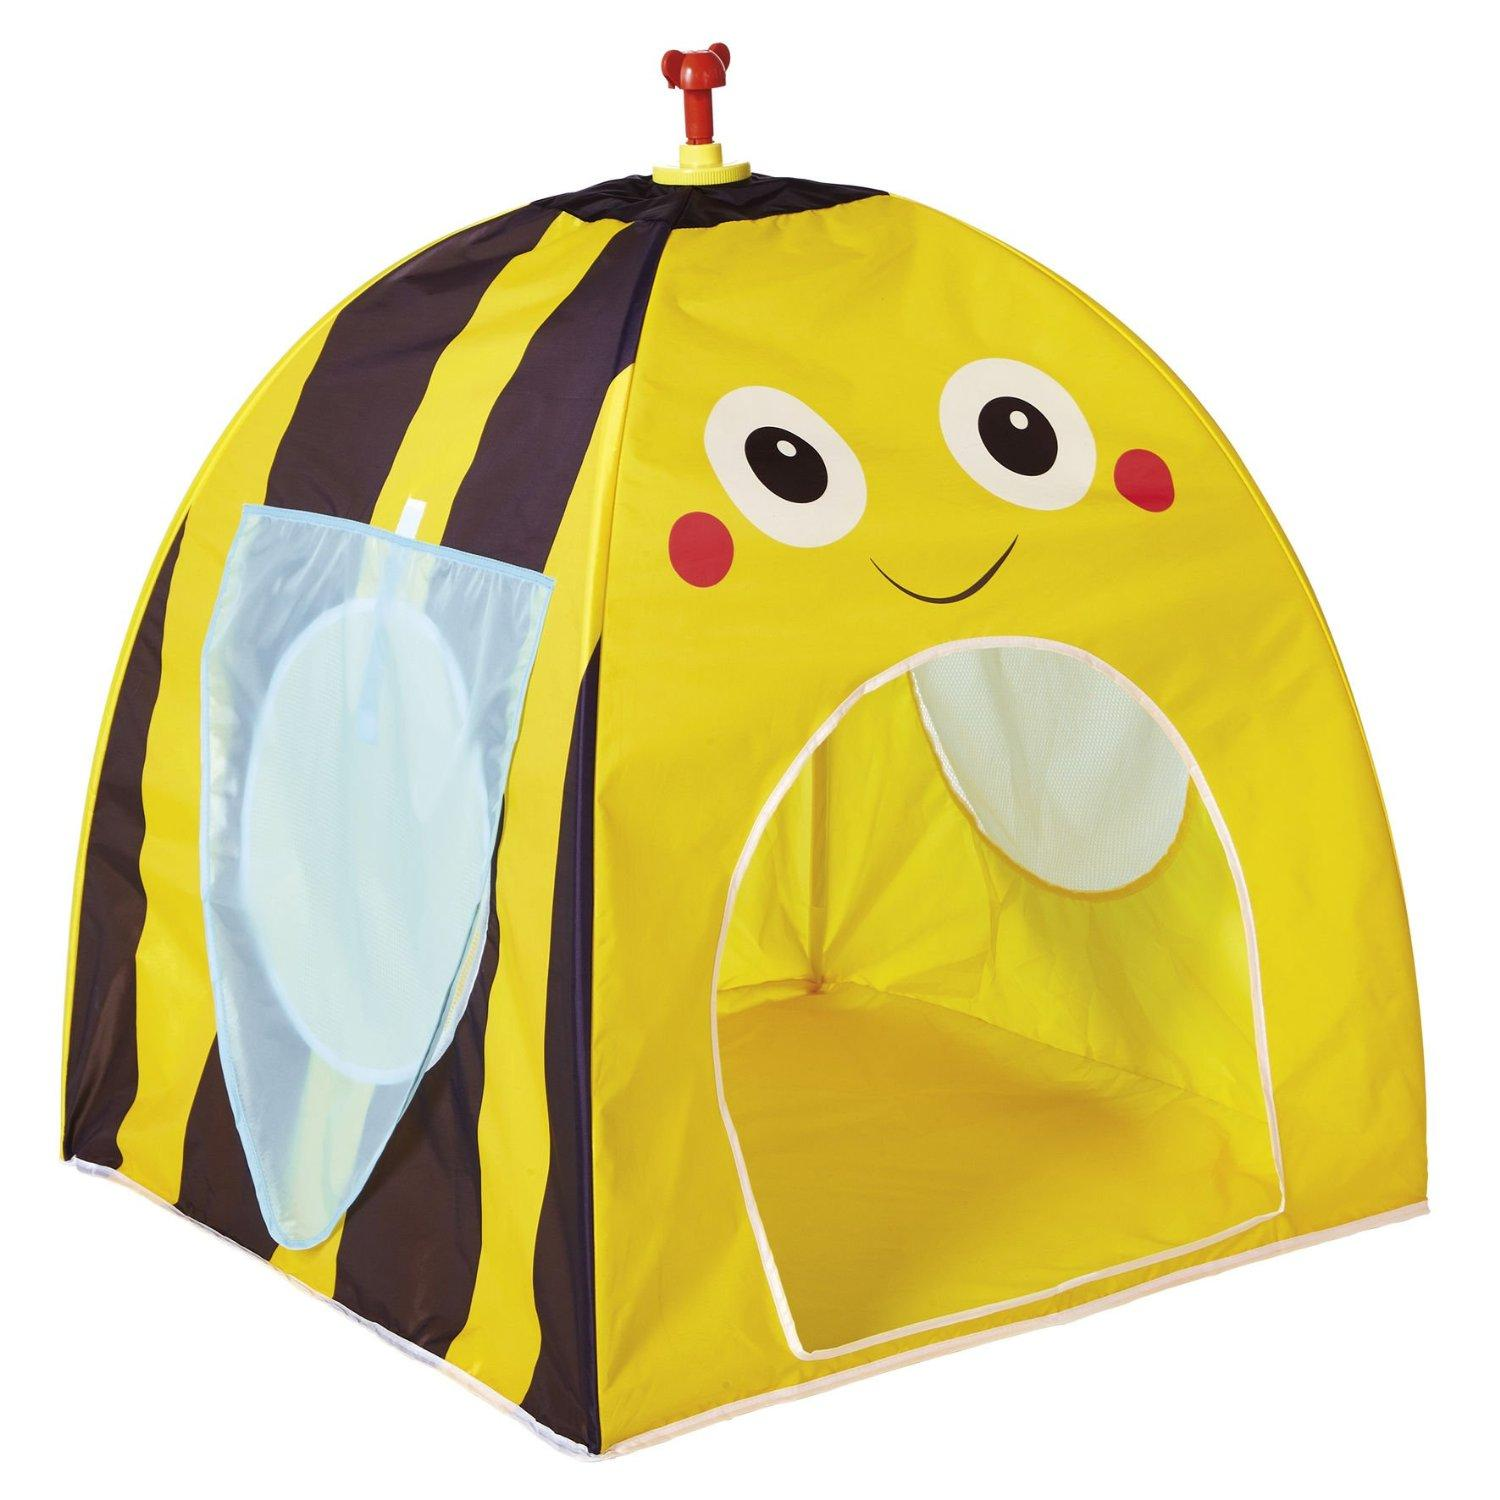 View larger  sc 1 st  Amazon.com & Amazon.com: Ugo Bee Tent: Toys u0026 Games